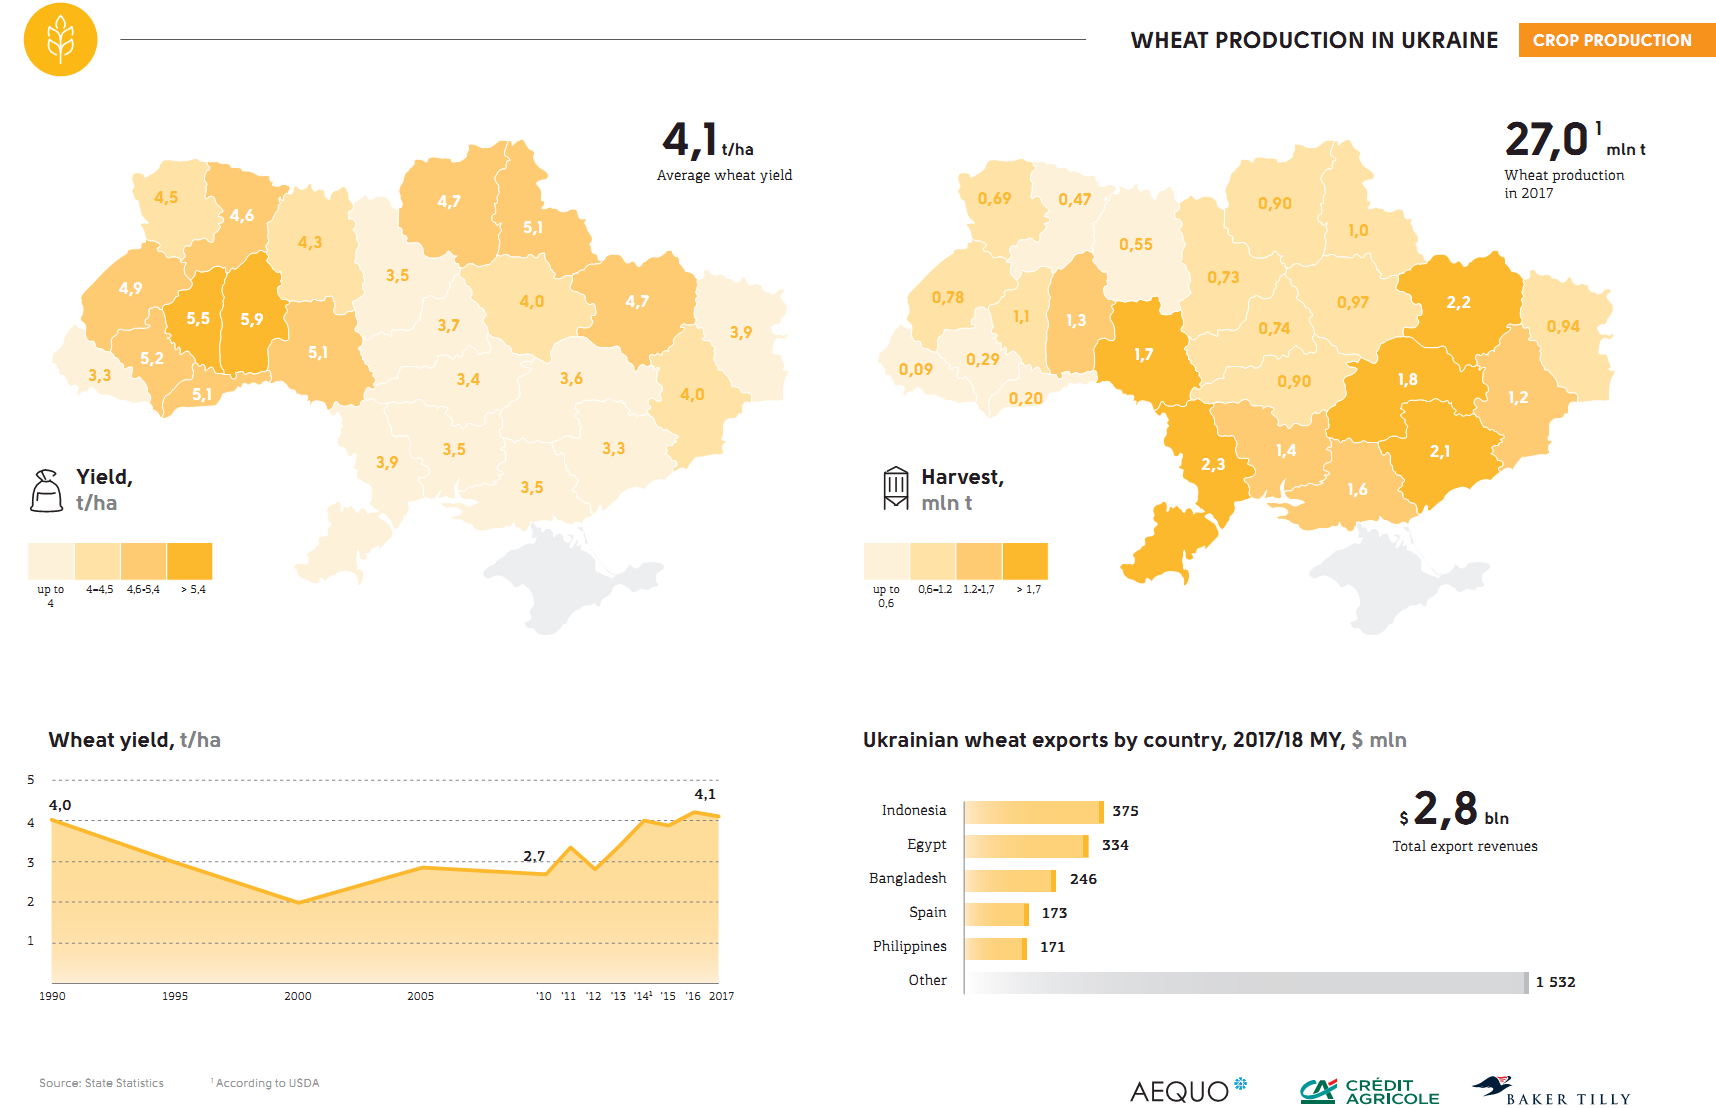 Wheat production in Ukraine (click for full resolution)